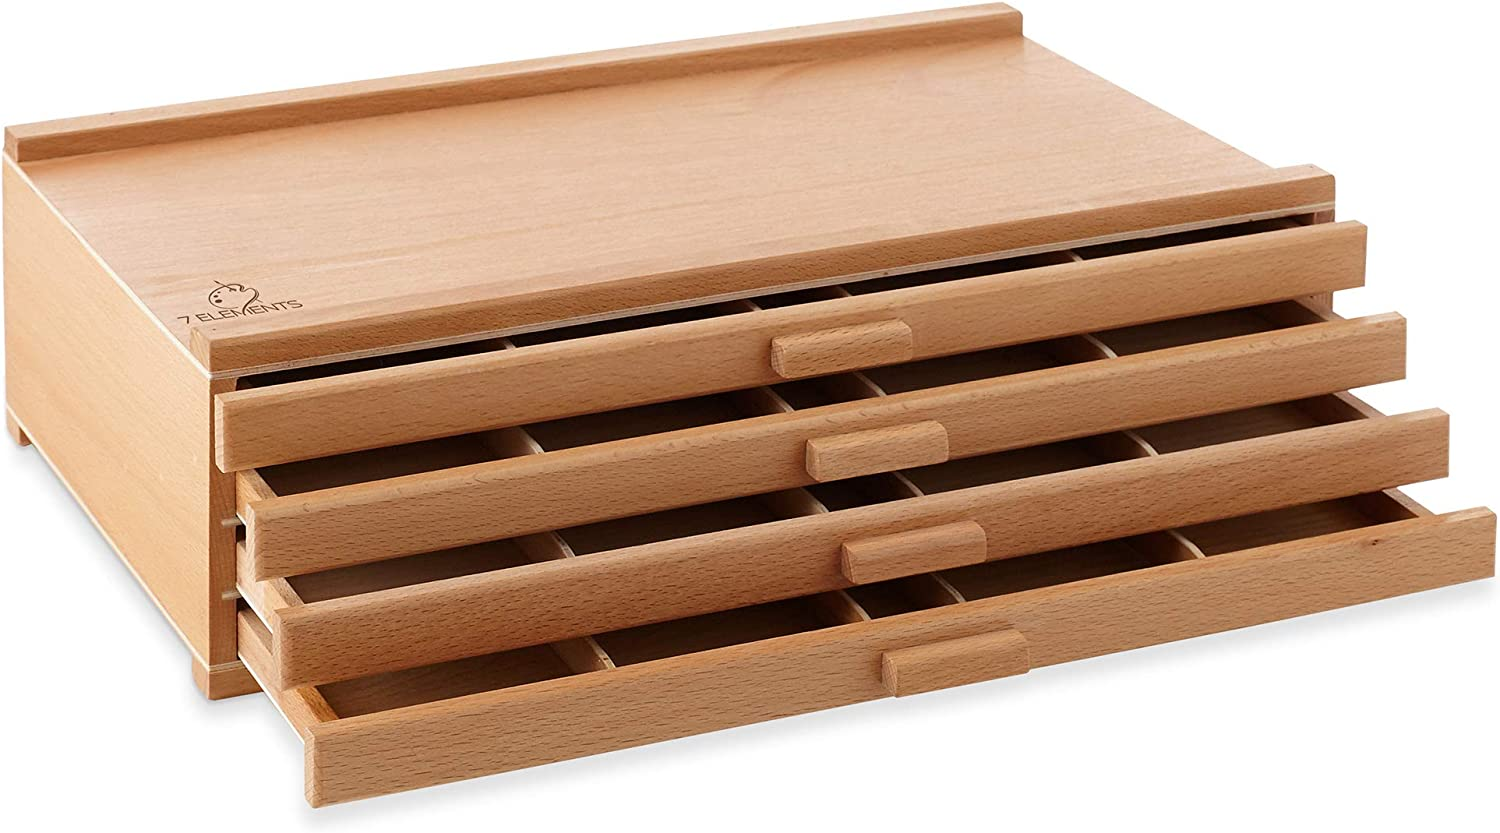 7 Elements 4 Drawer Regular discount Beechwood Artist Max 44% OFF Storage for Past Supply Box